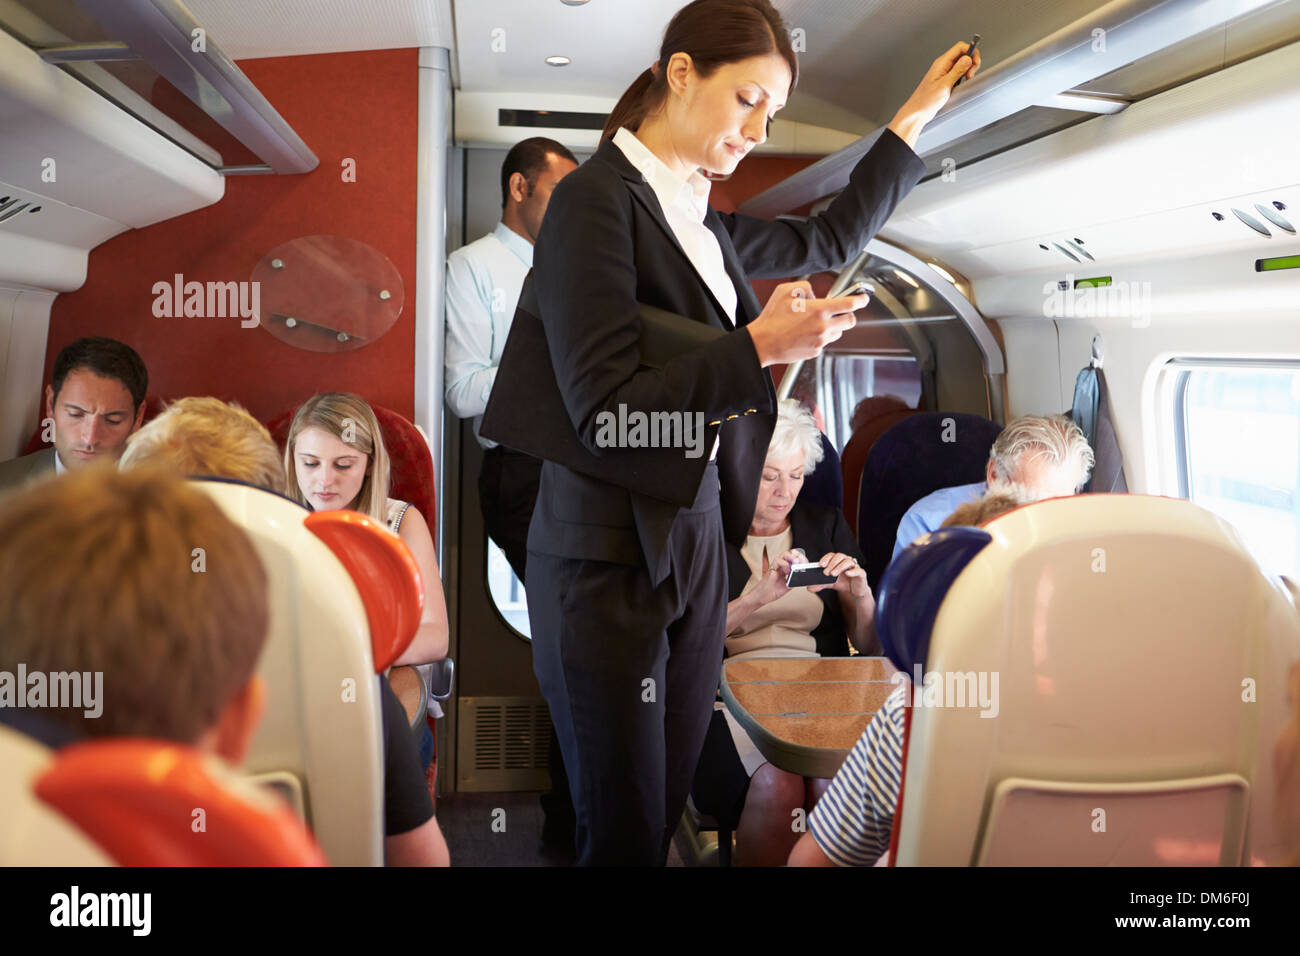 Businesswoman Using Mobile Phone On Busy Commuter Train - Stock Image